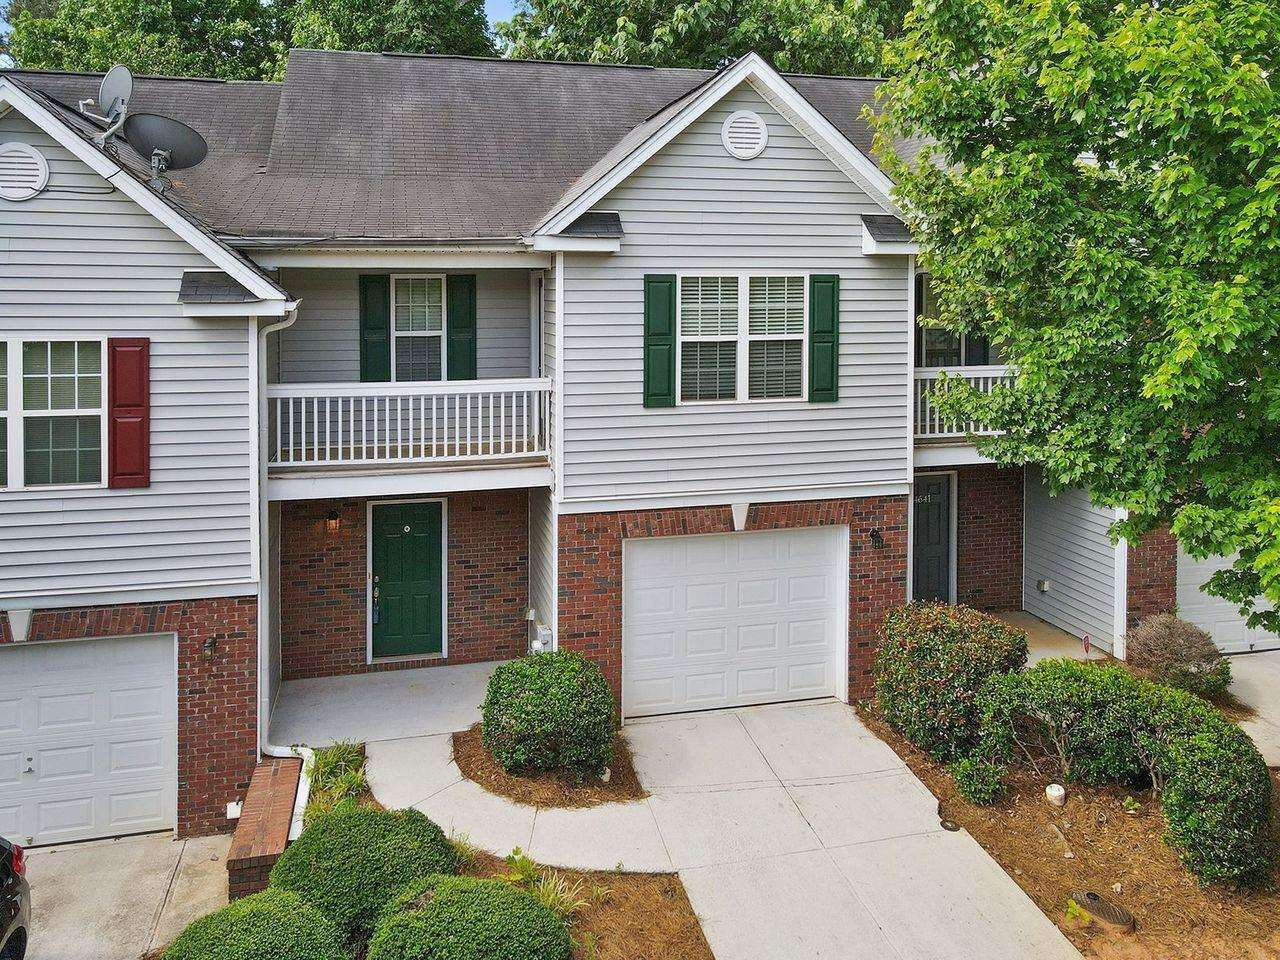 4643 Grand Central Parkway, Decatur, GA 30035 - #: 8998846